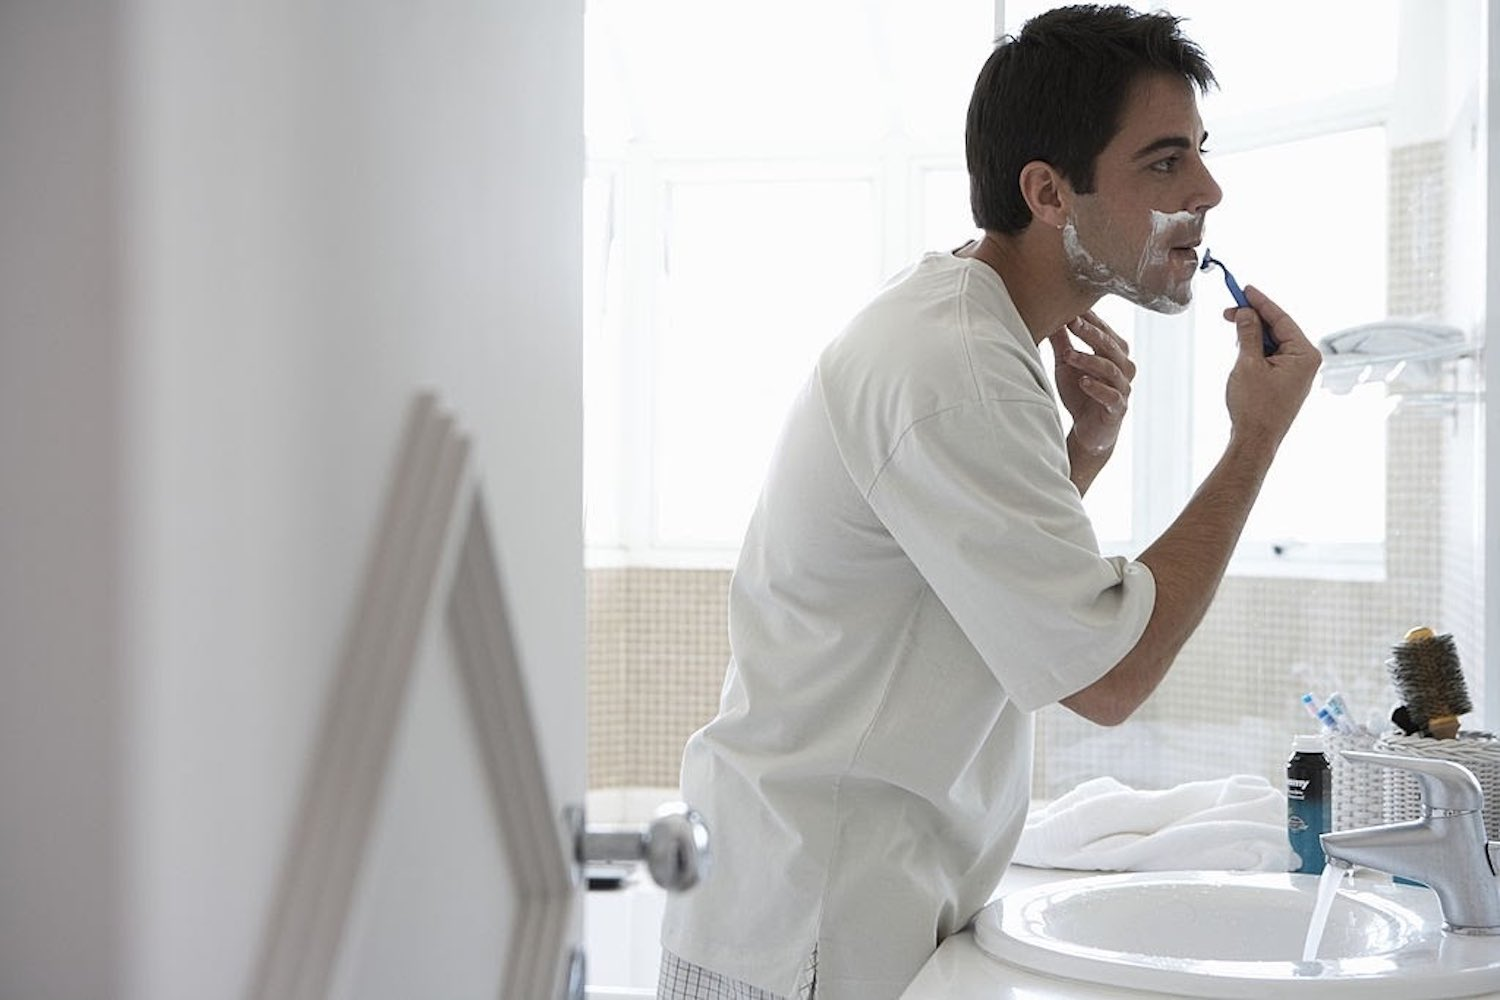 Want a Smooth, Safe Shave Every Time? Try These Proven Tips